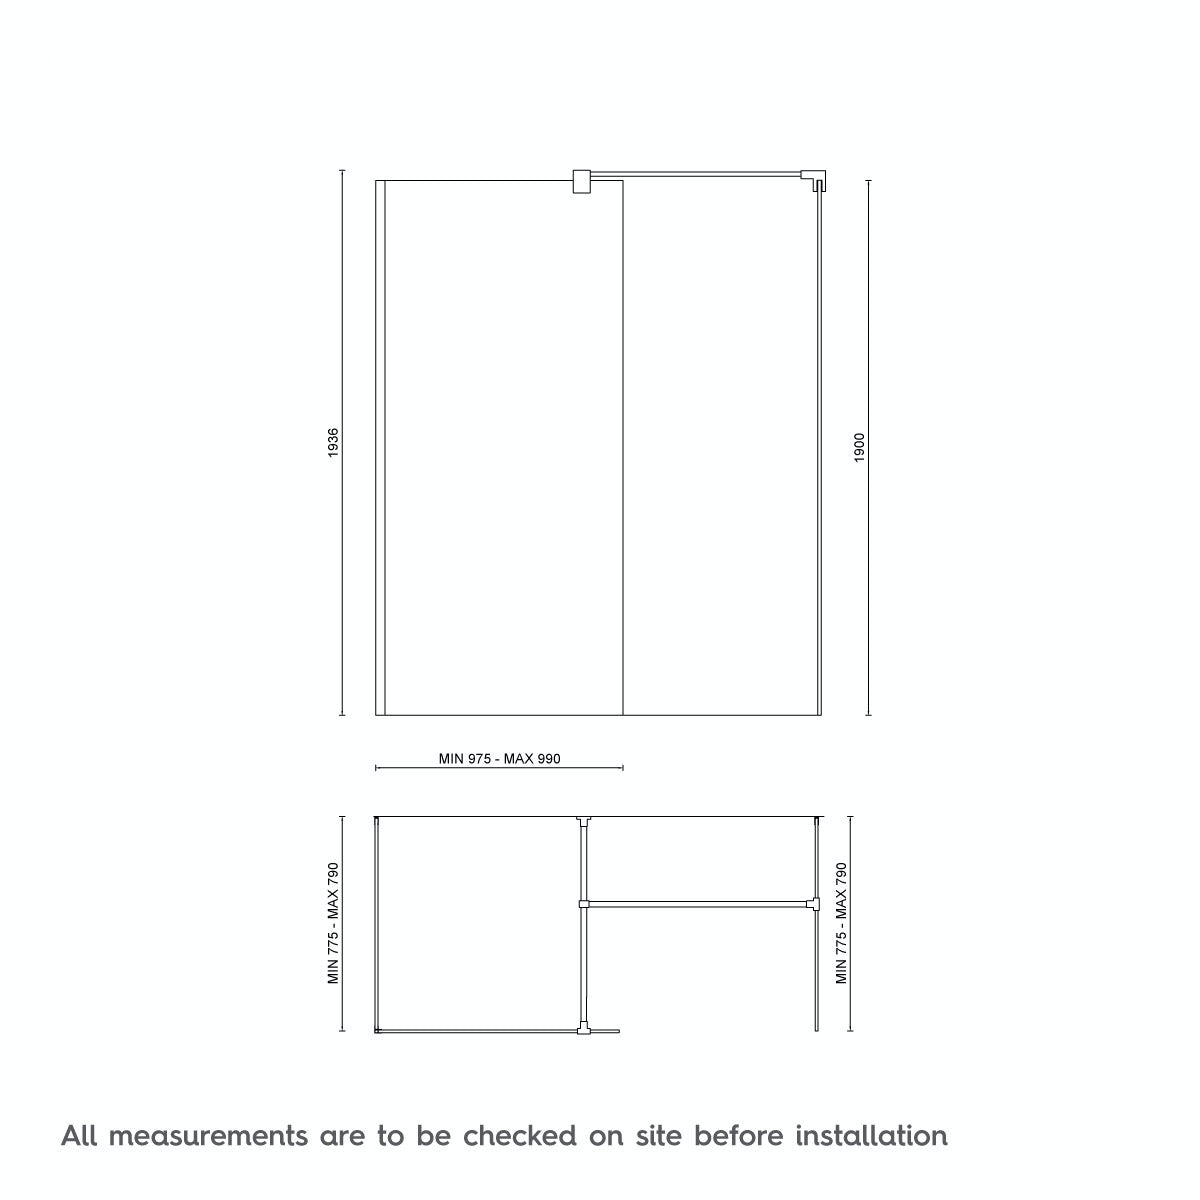 Dimensions for 1600 x 800